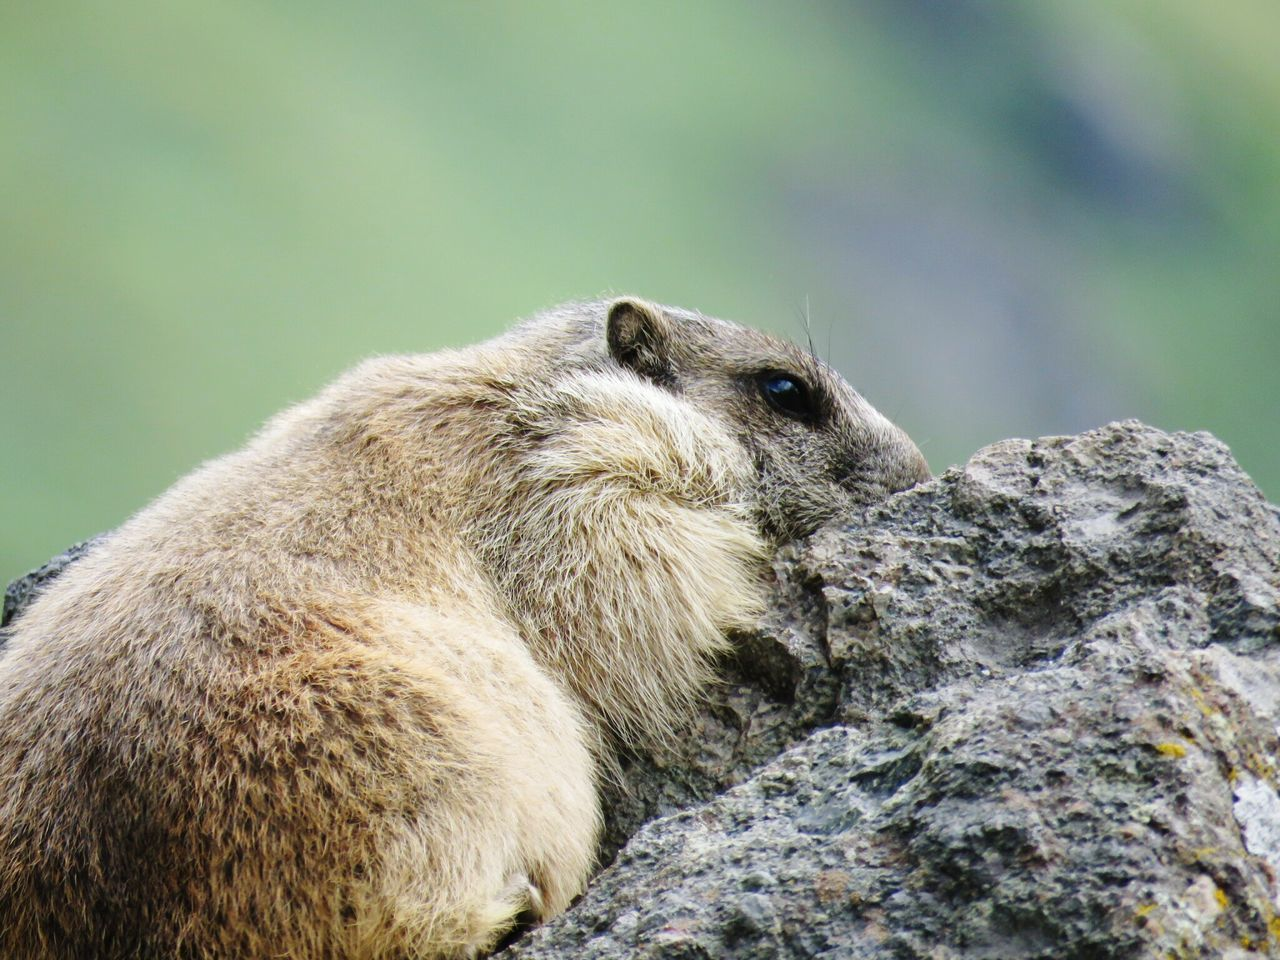 Close-Up Of Rodent On Rock